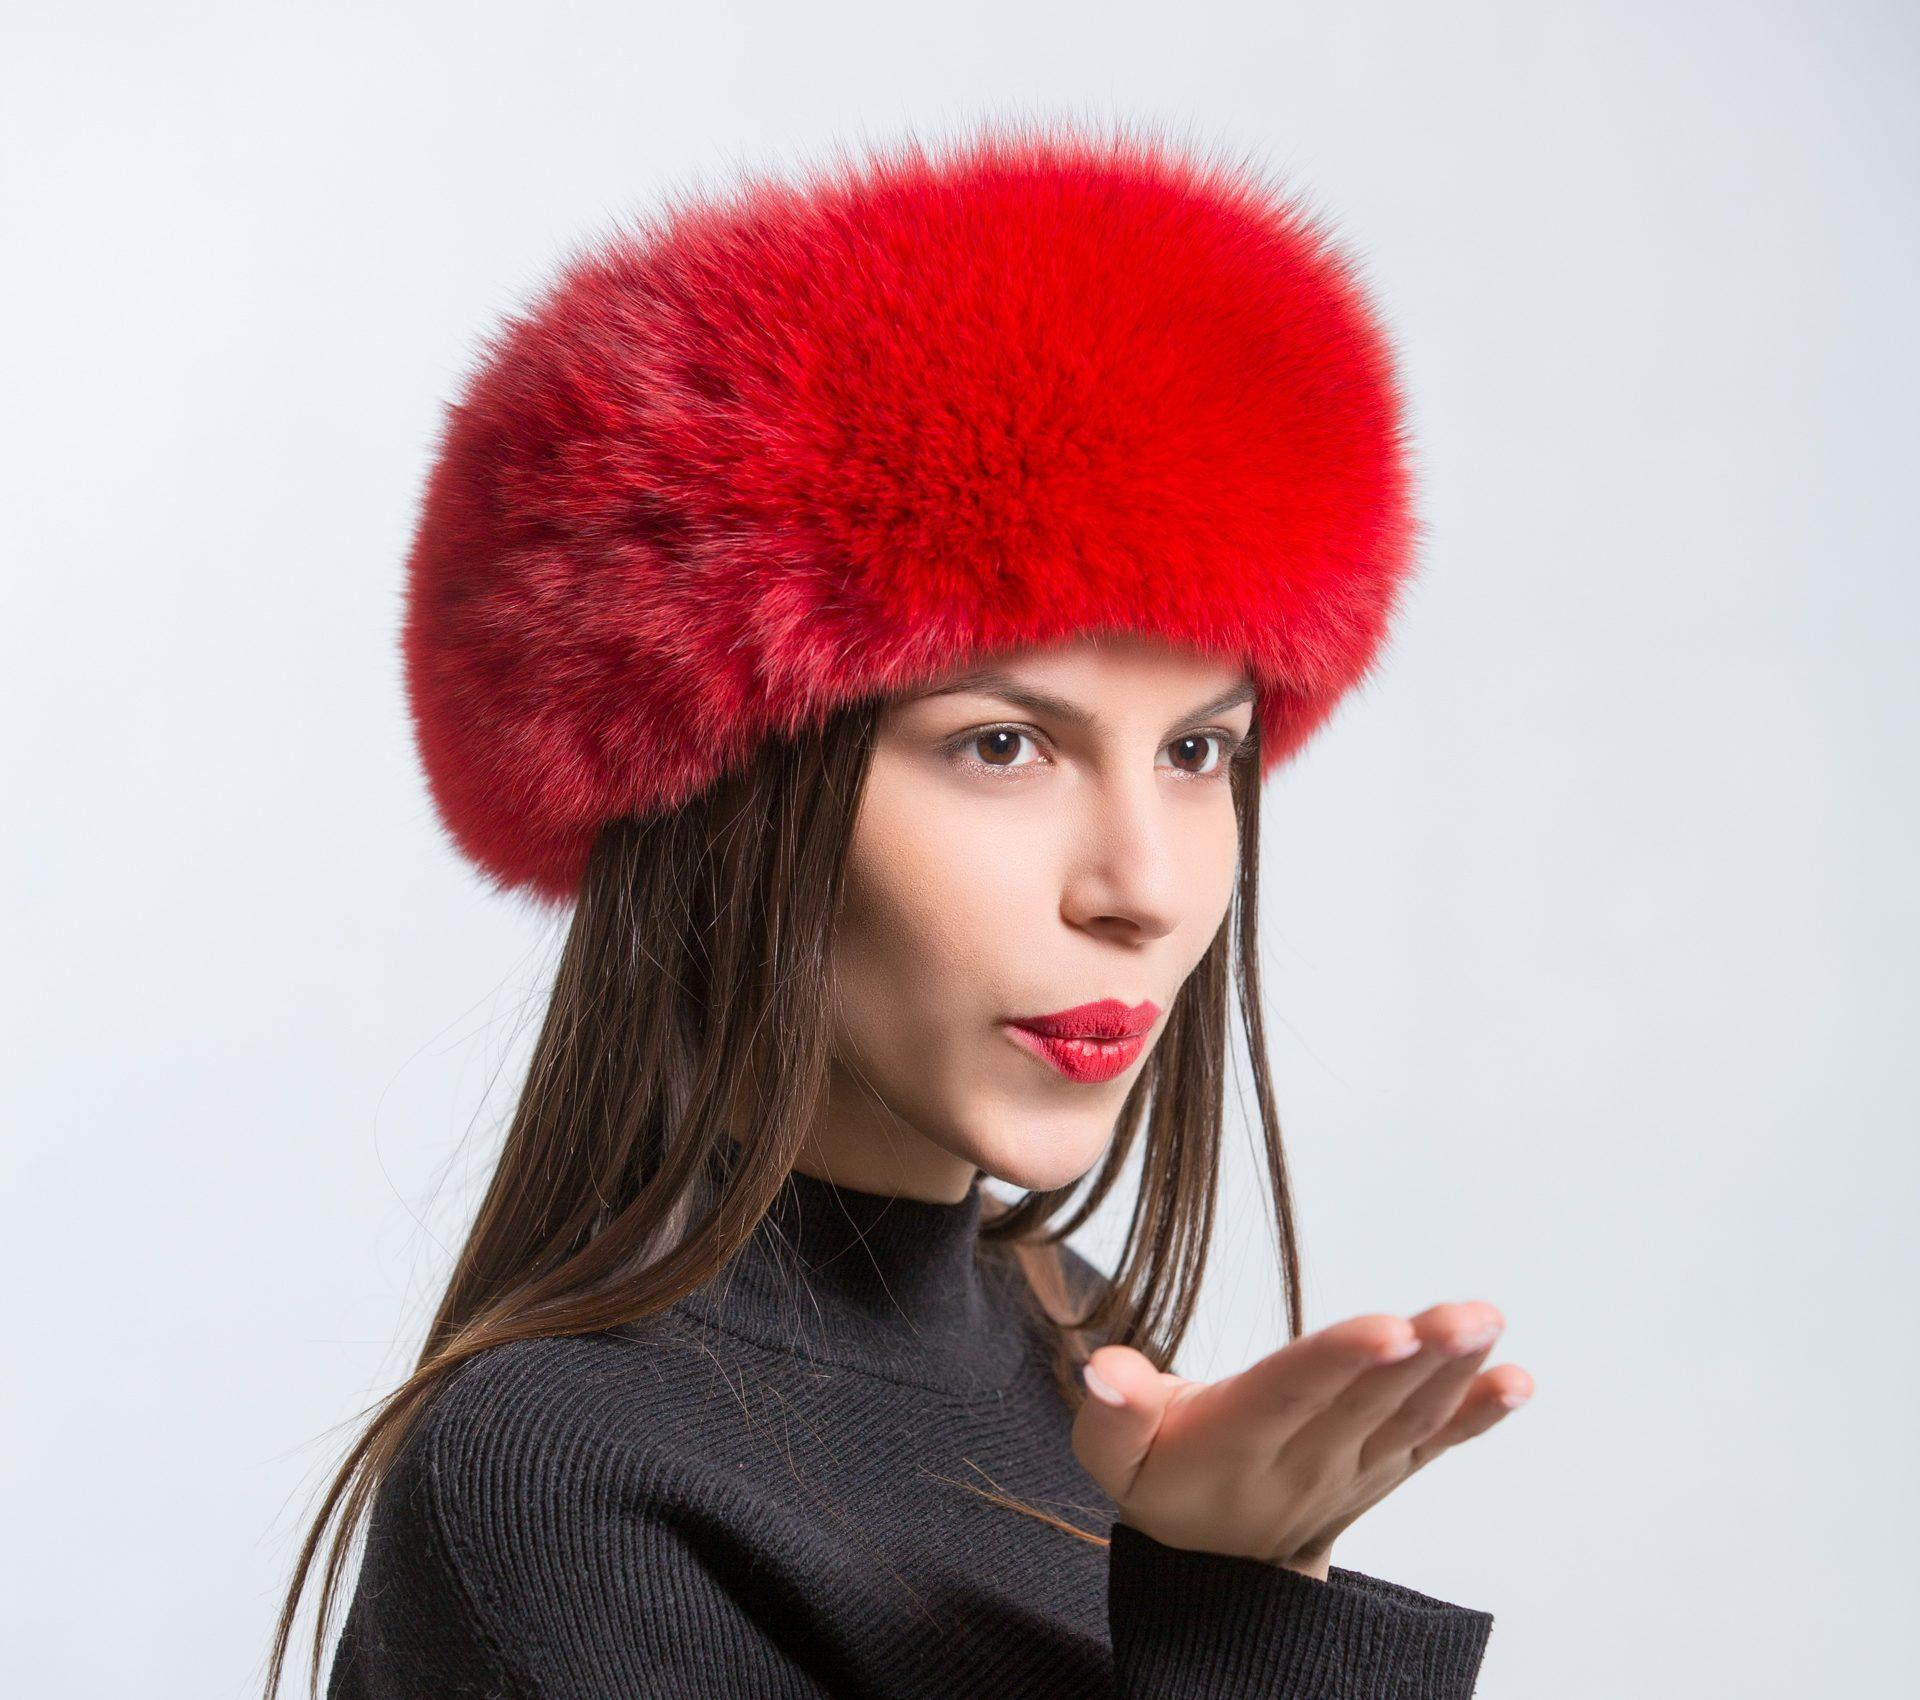 red fur headband